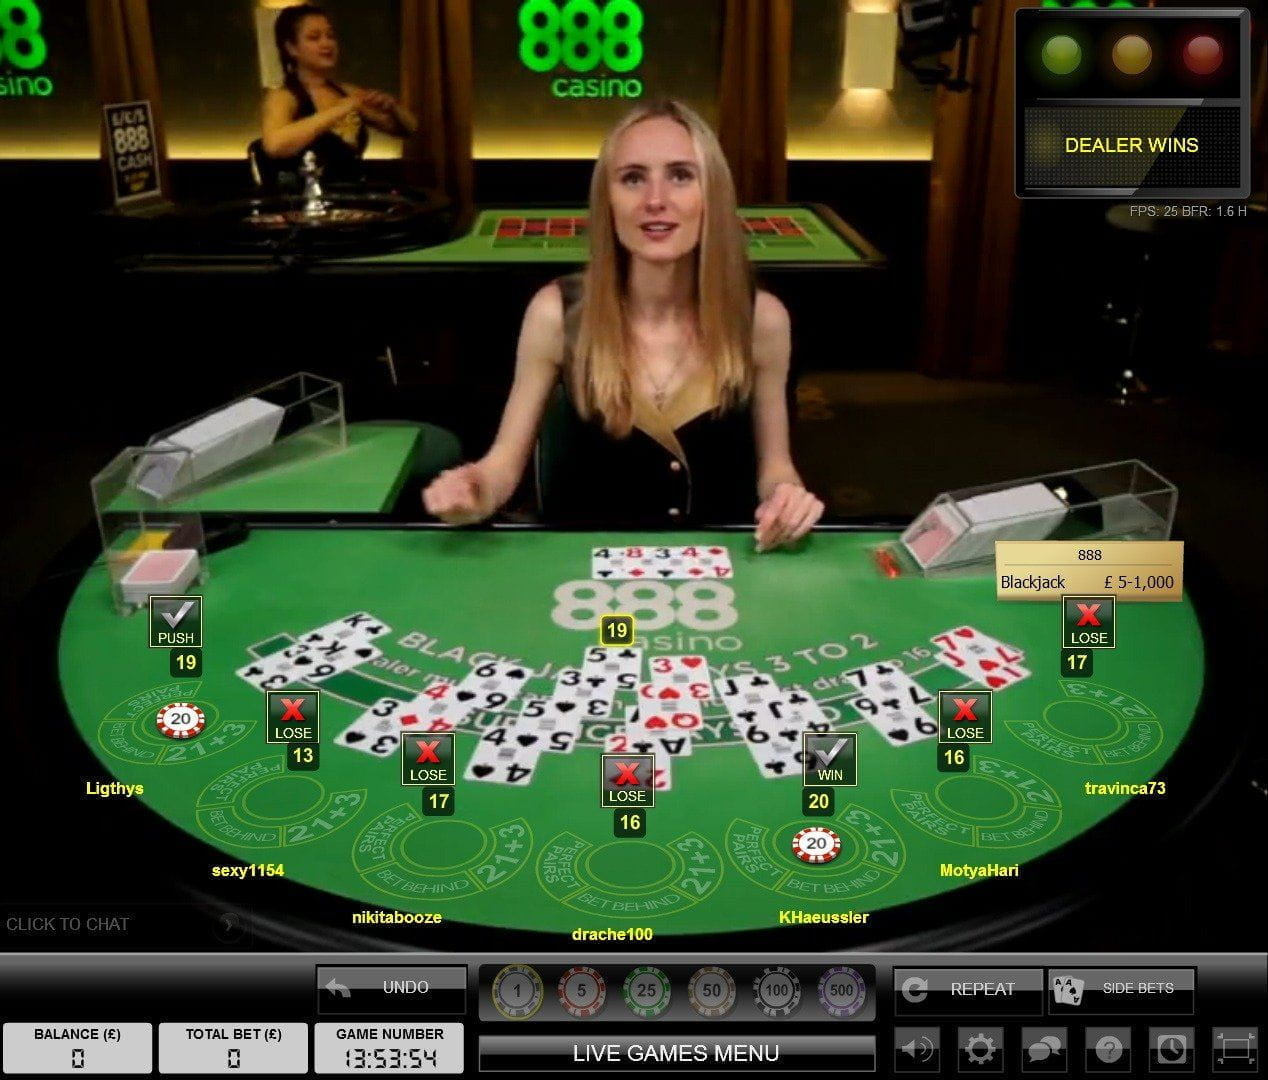 888 casino slots live roulette and blackjack games